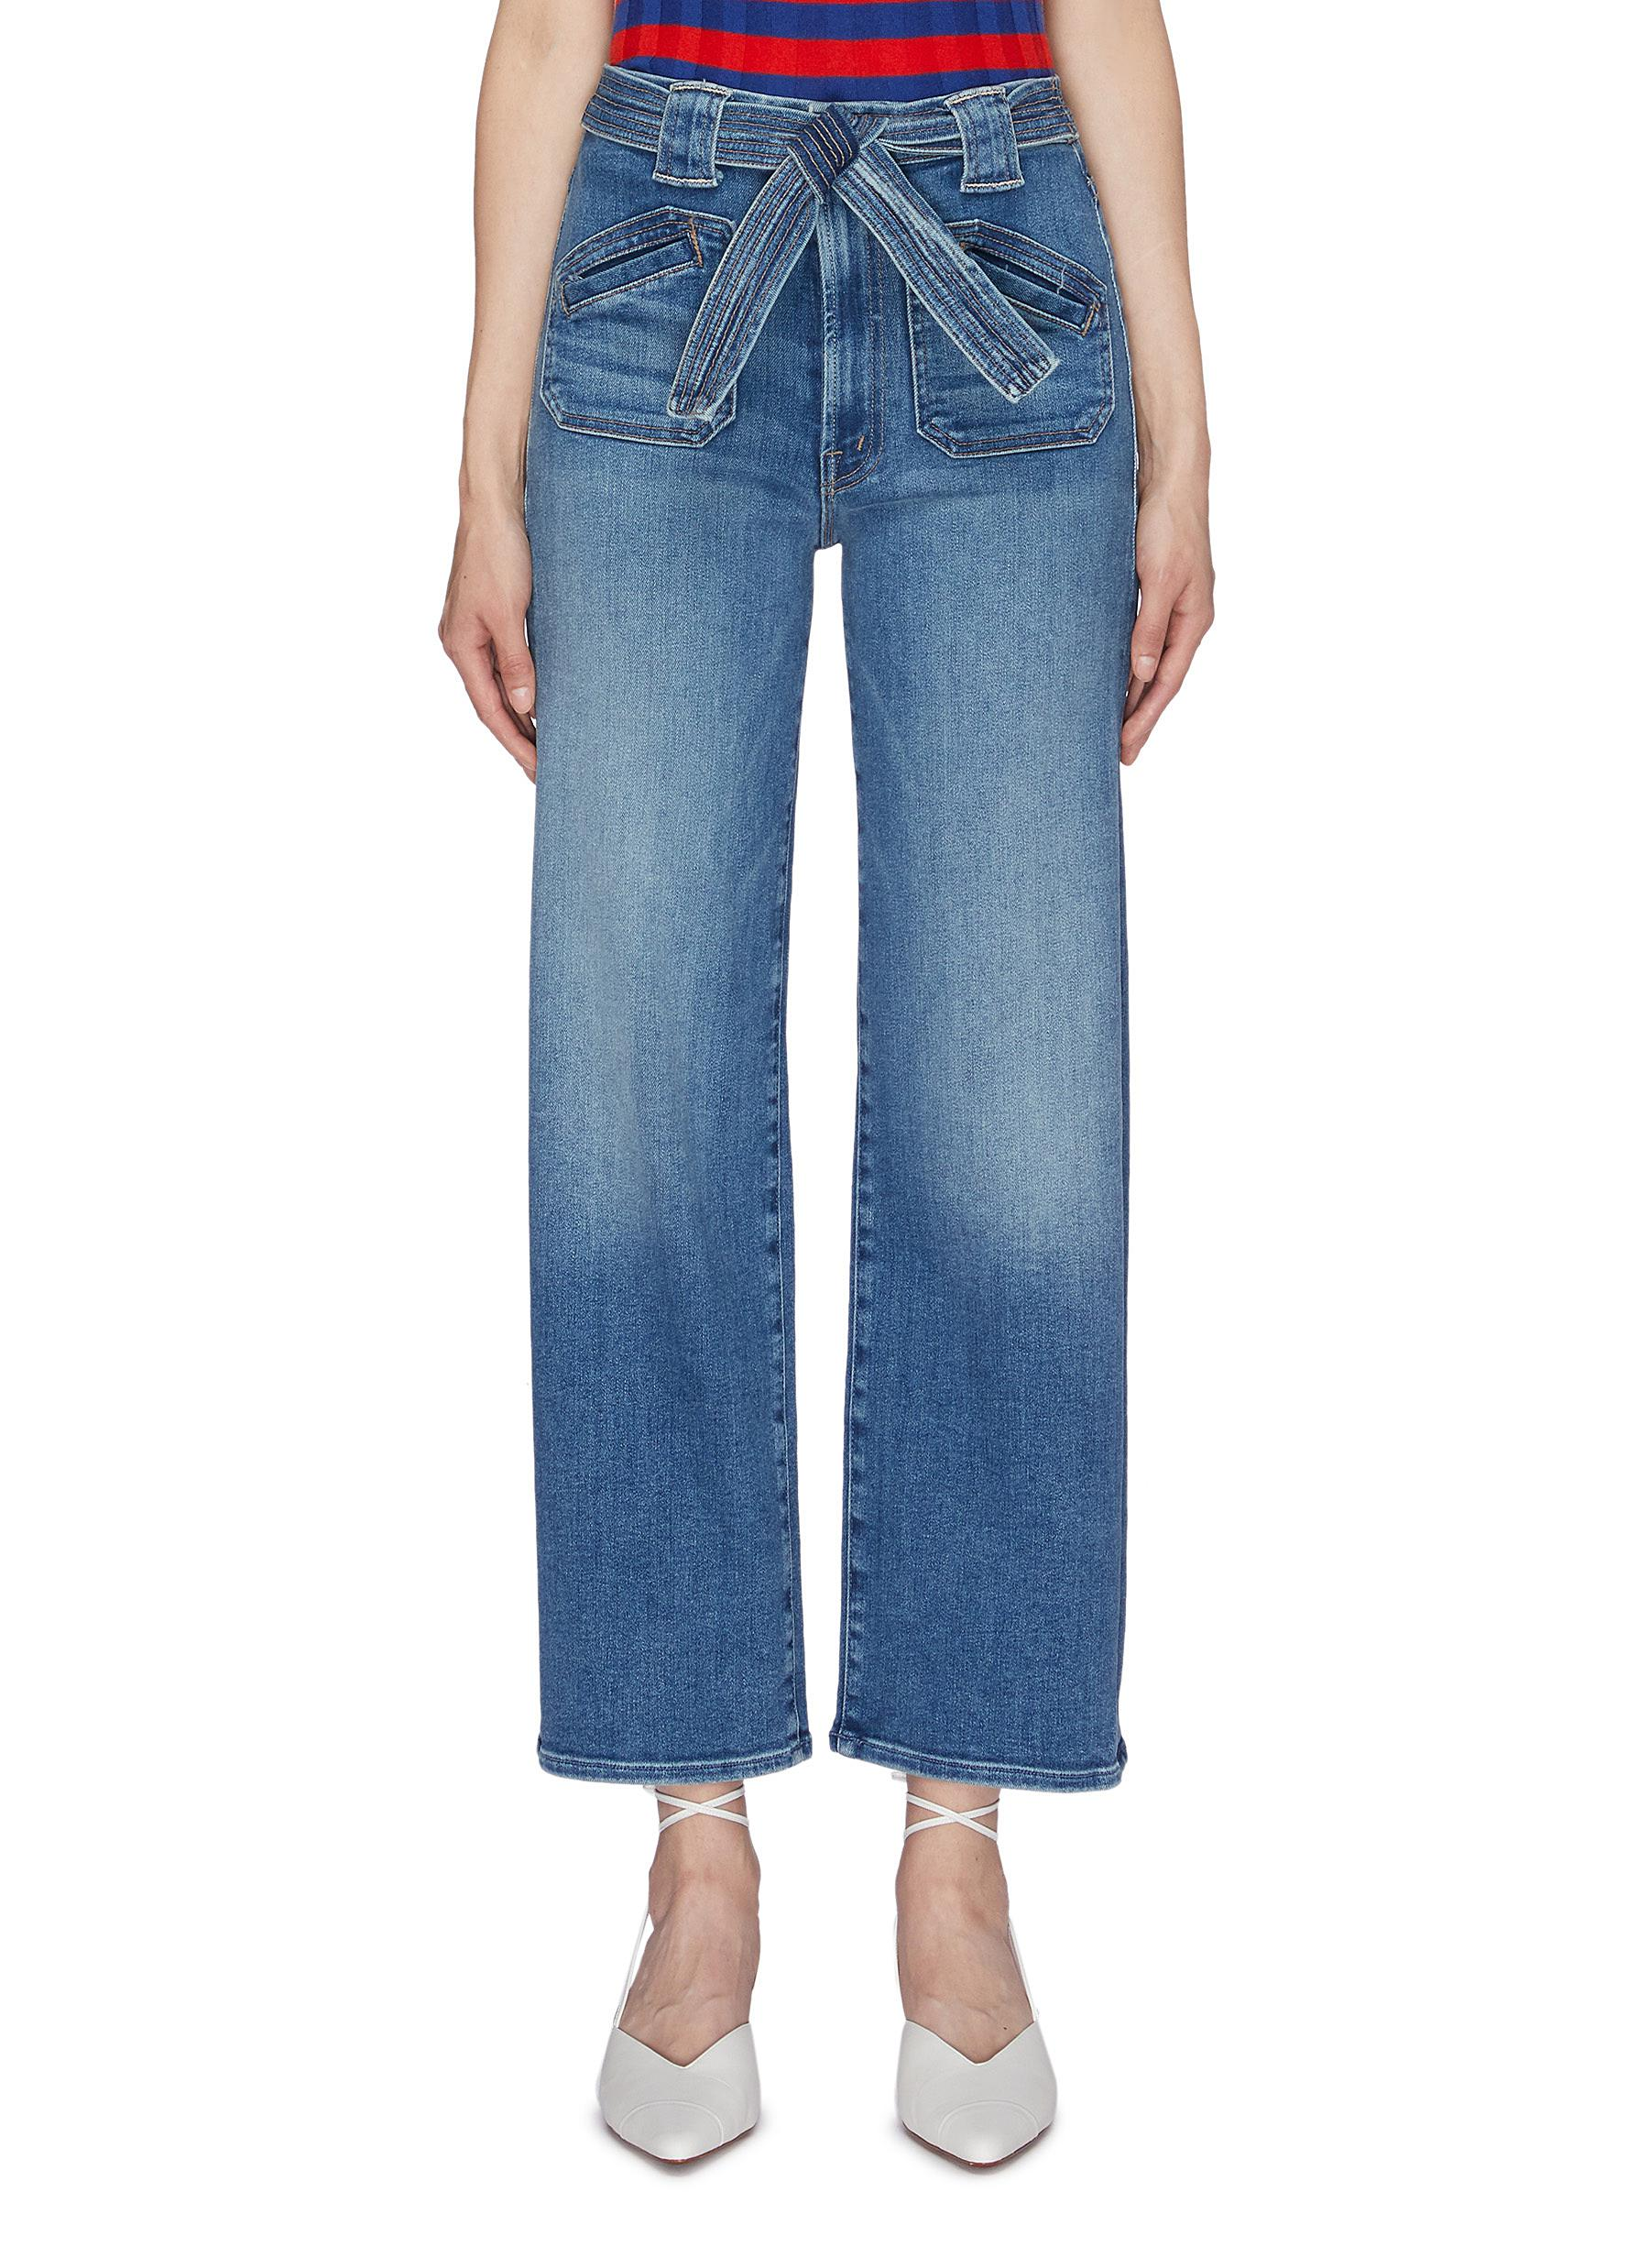 The Tie Patch Rambler belted wide leg jeans by Mother